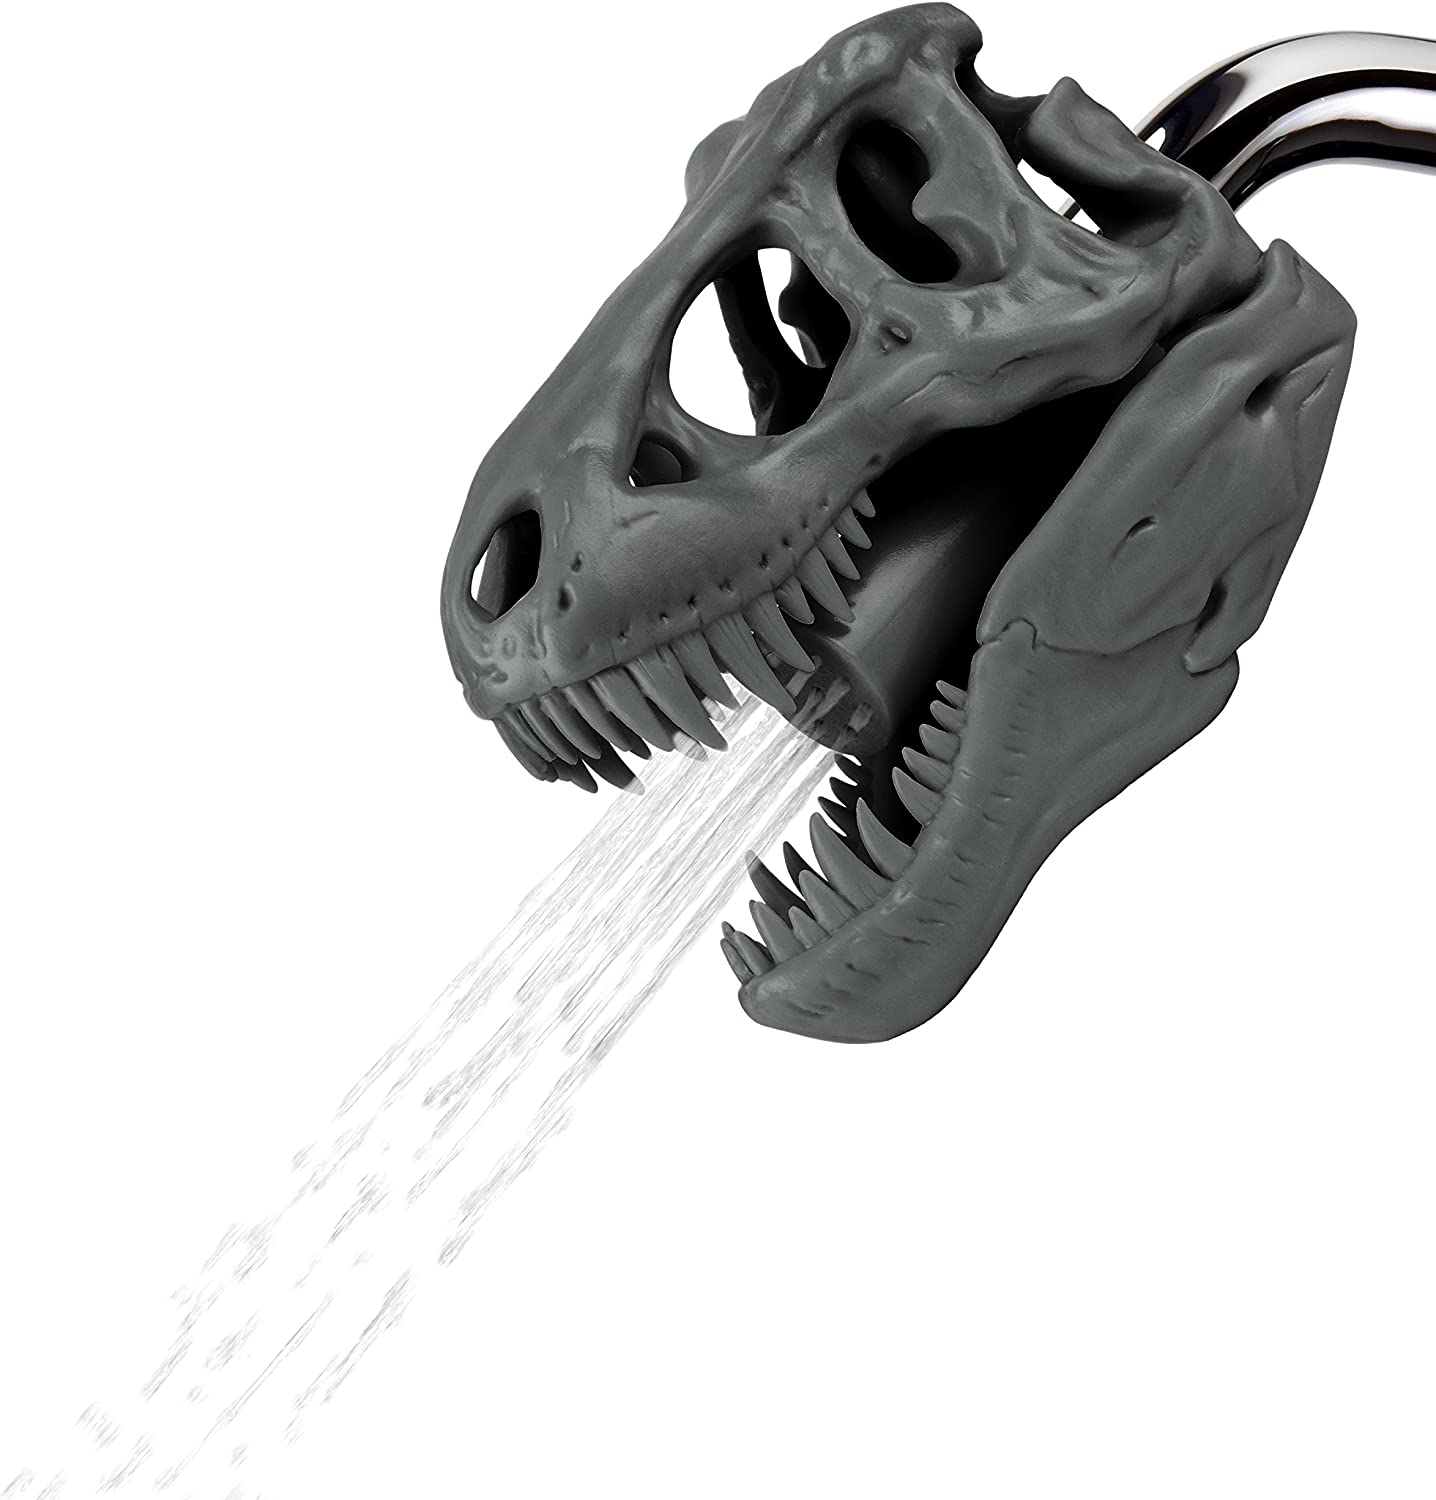 Barbuzzo T-Rex Shower Head, Gray - Prehistoric Shower Nozzle Shaped like a Tyrannosaurus Rex Skull - Gives Your Shower-Time a Jurassic Touch - Terrific Gift for Kids & Dino-Enthusiasts - Wash N' Roar